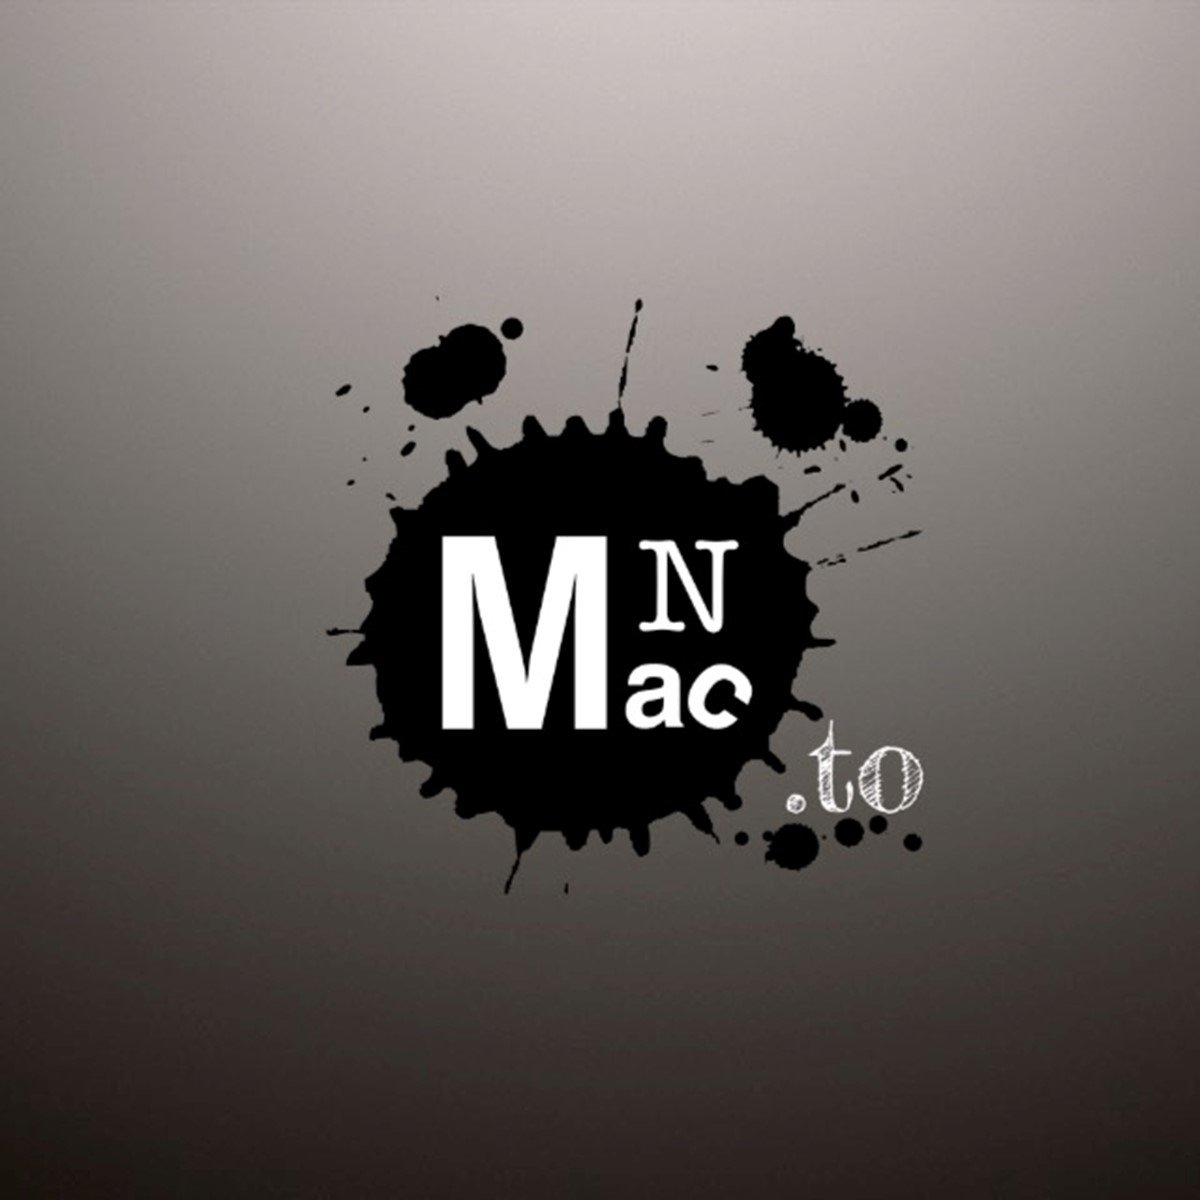 Nmac to Alternatives and Similar Websites and Apps